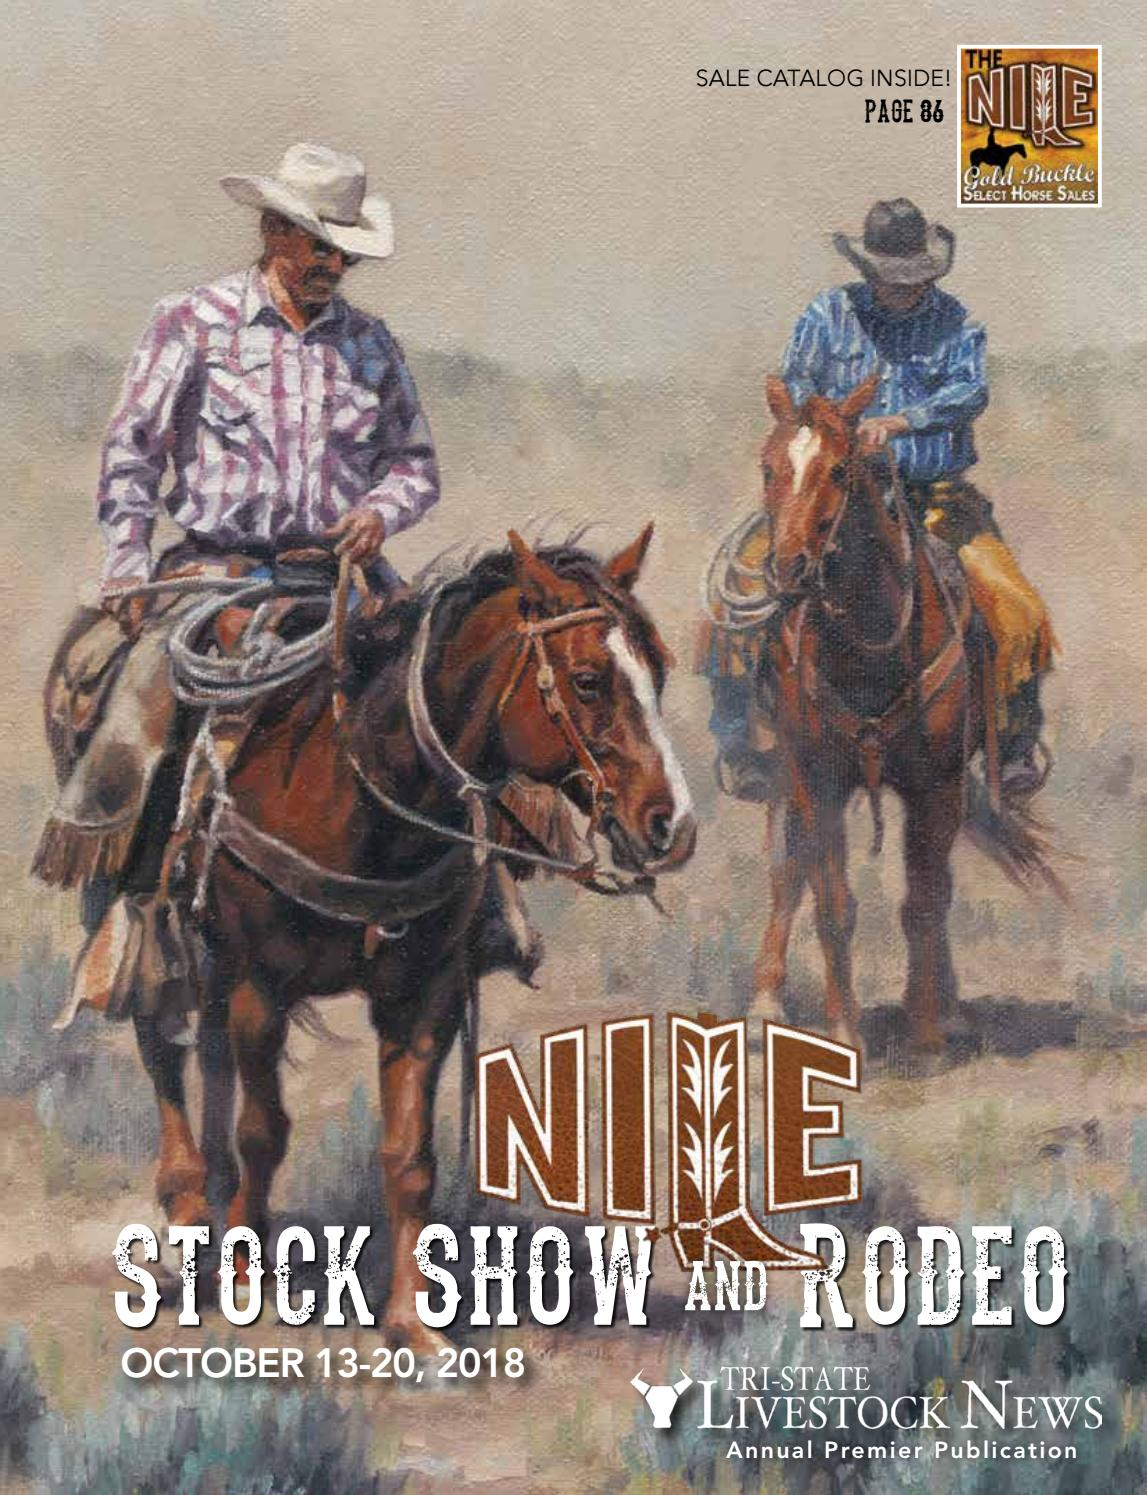 NILE Stock Show and Rodeo 2018 by Tri-State Livestock News - Farmer &  Rancher Exchange - issuu